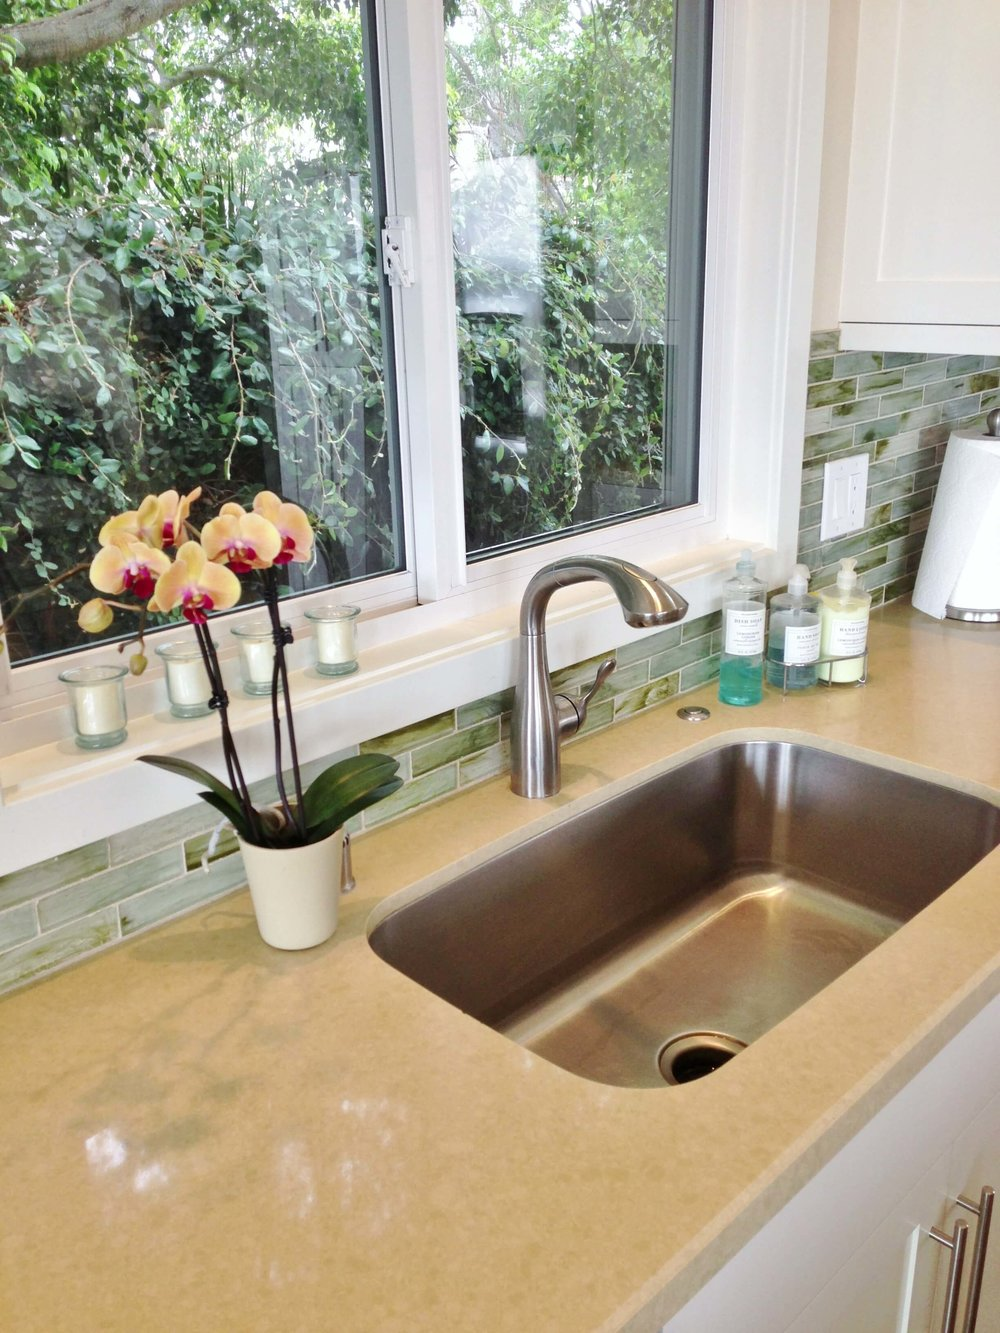 Single bowl stainless steel kitchen sink, plumbing fixtures: Hansgrohe, Toto - Ventura California rental house review tour